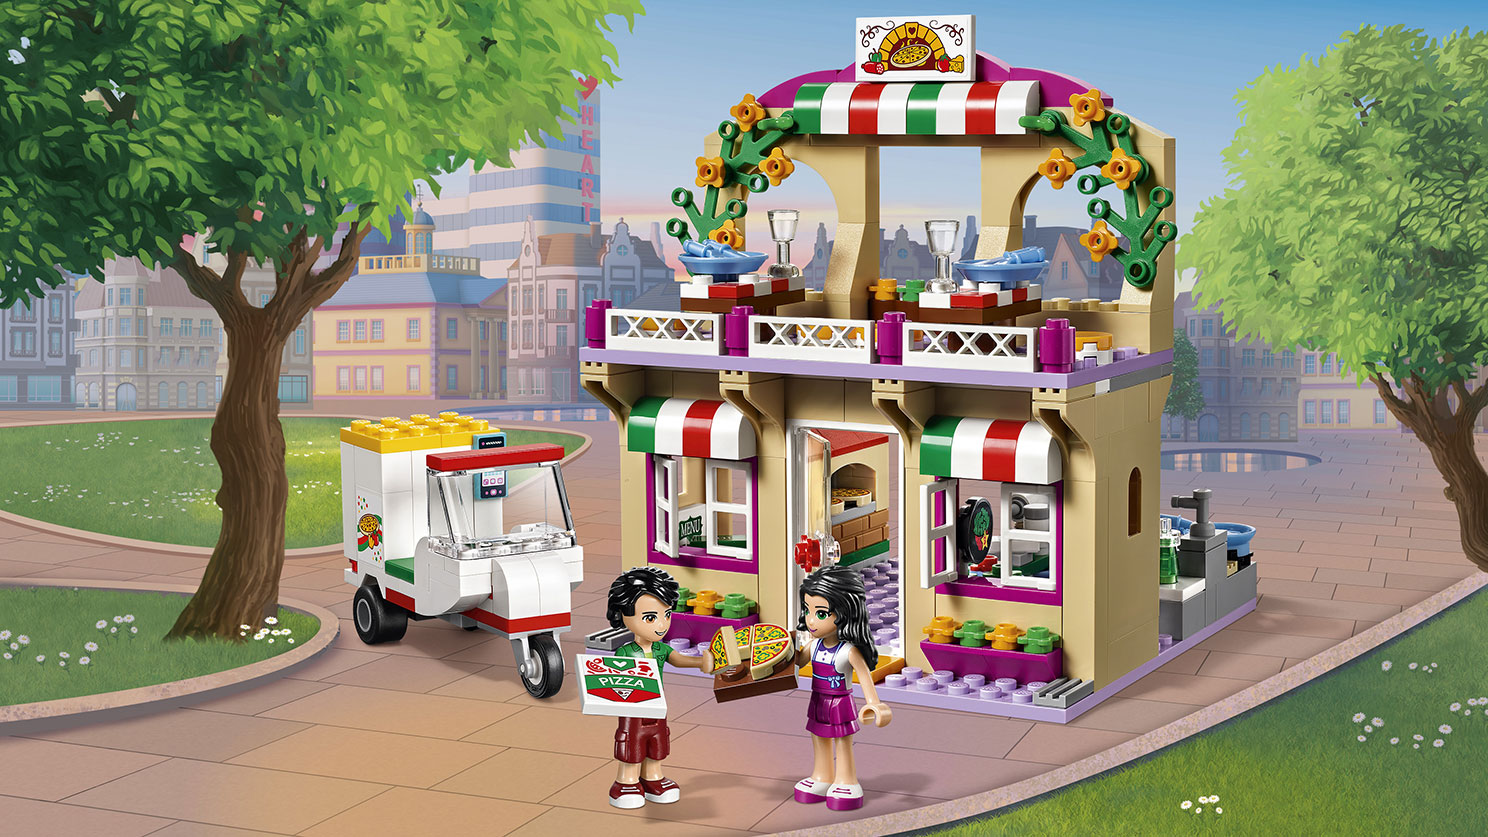 41311 La pizzeria de Heartlake City